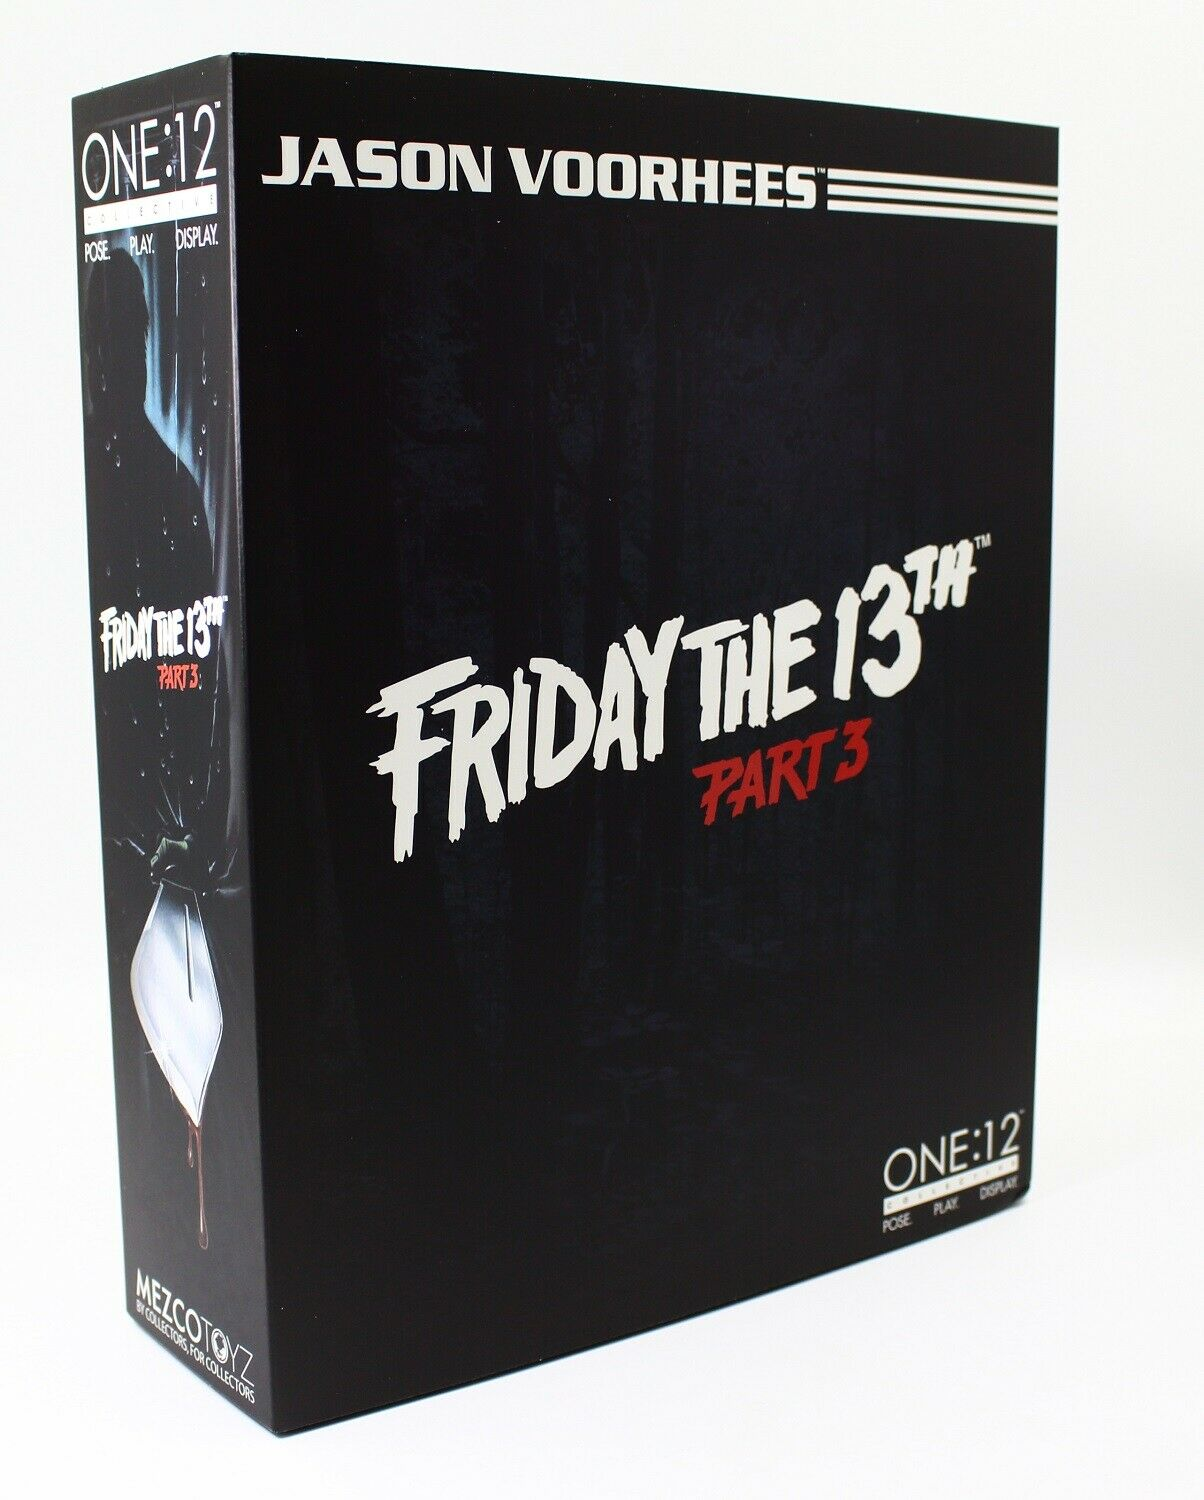 New Mezco Toyz Friday The 13th Part 3 One 12 Collective Jason Voorhees Figure